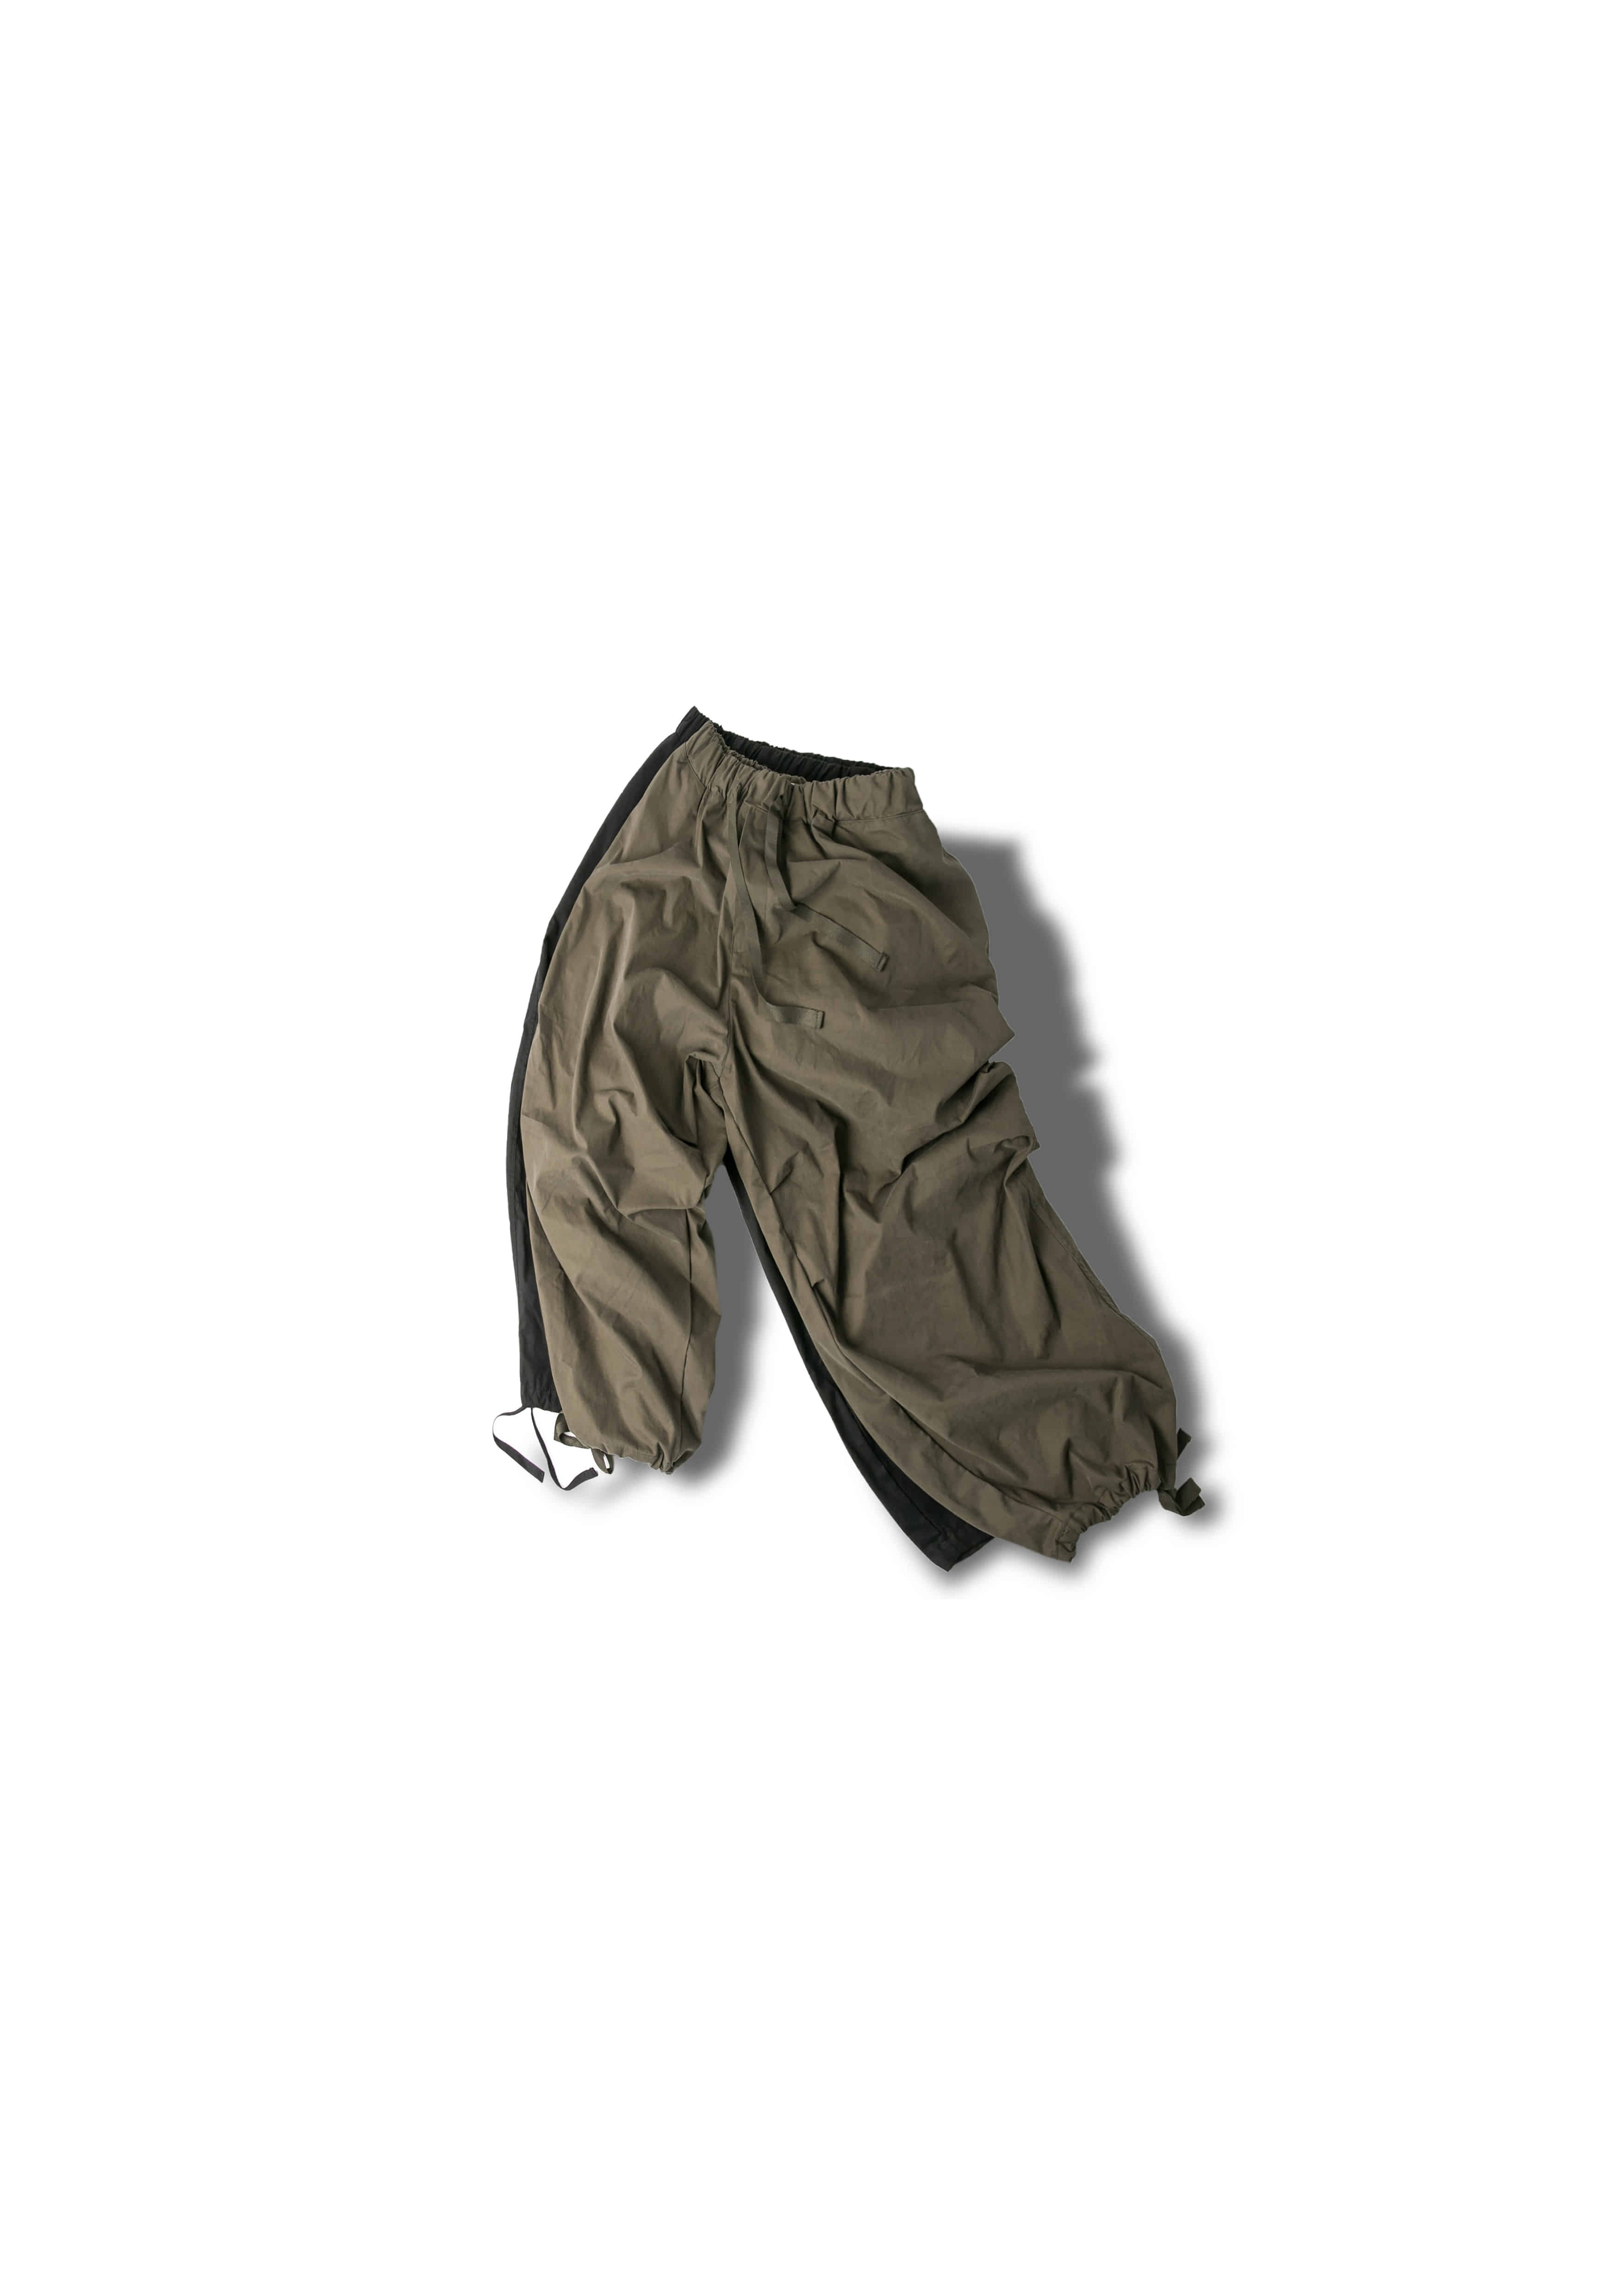 [U] Army Balloon Pants - 2color [ RE ]